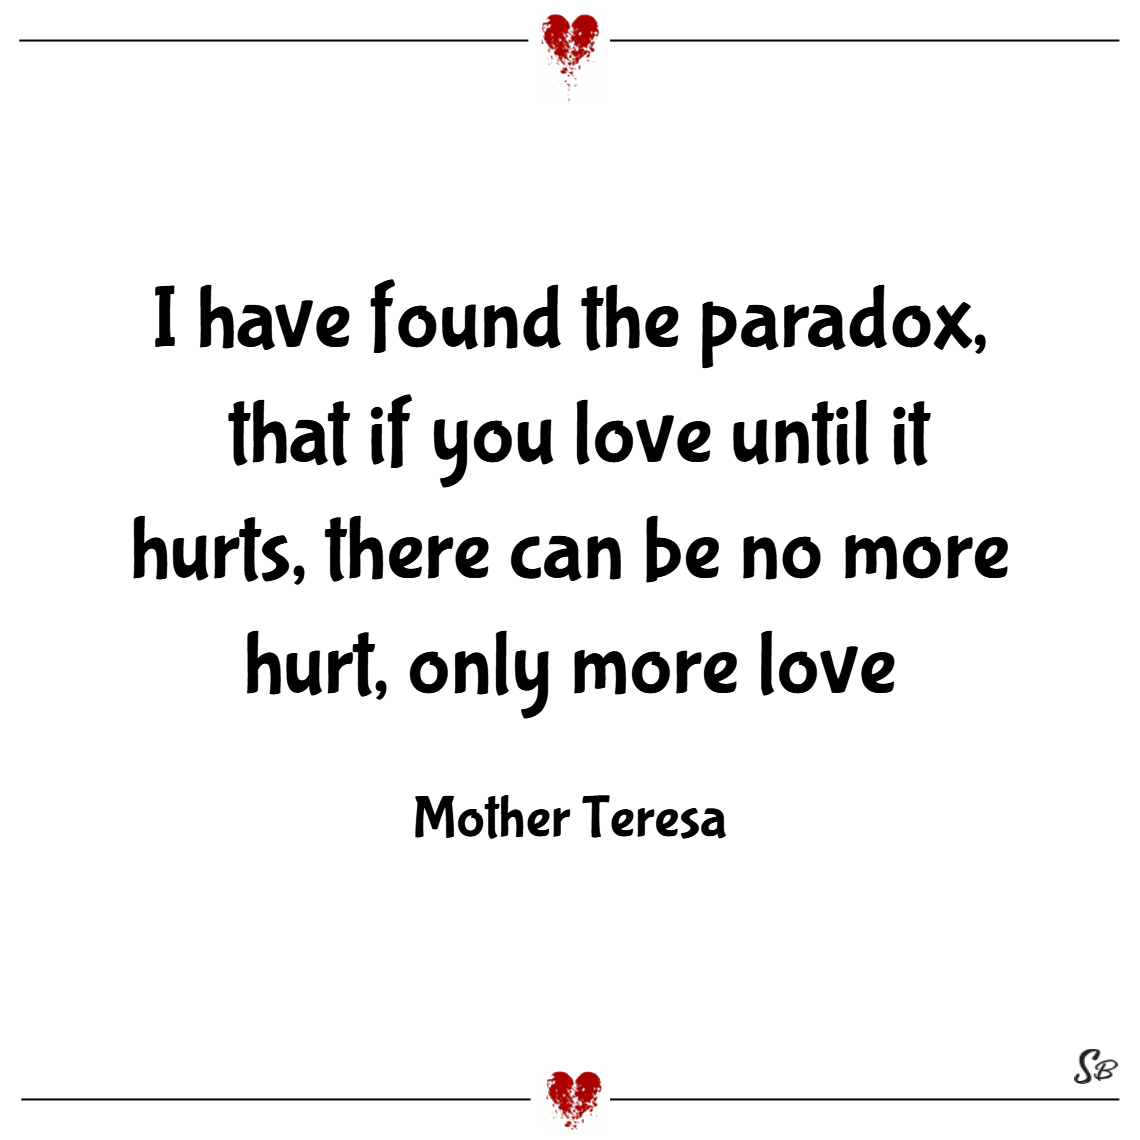 I have found the paradox, that if you love until it hurts, there can be no more hurt, only more love. – mother teresa